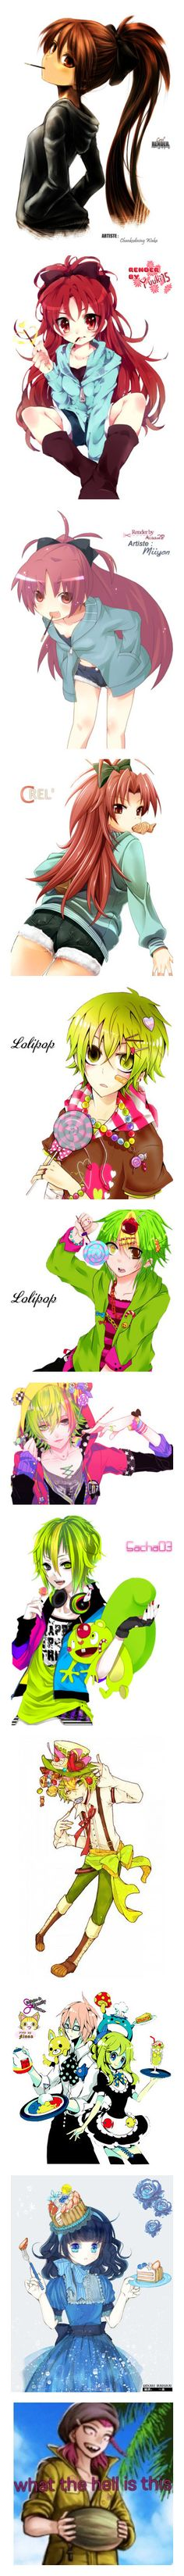 """""""{ anime characters with food }"""" by toby-senpai ❤ liked on Polyvore featuring pmmm, anime, art, happy tree friends, render, vocaloid, filler, tokyo ghoul, fillers and marvel"""